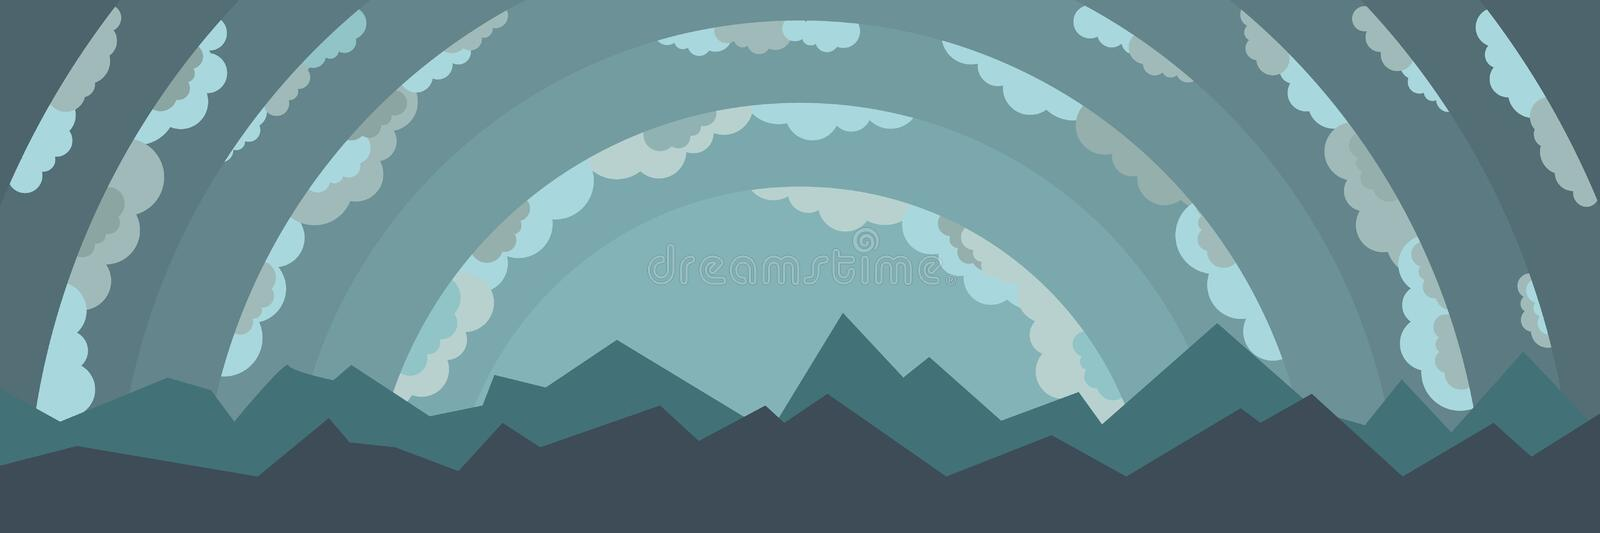 Landscape with mountains and clouds stock images